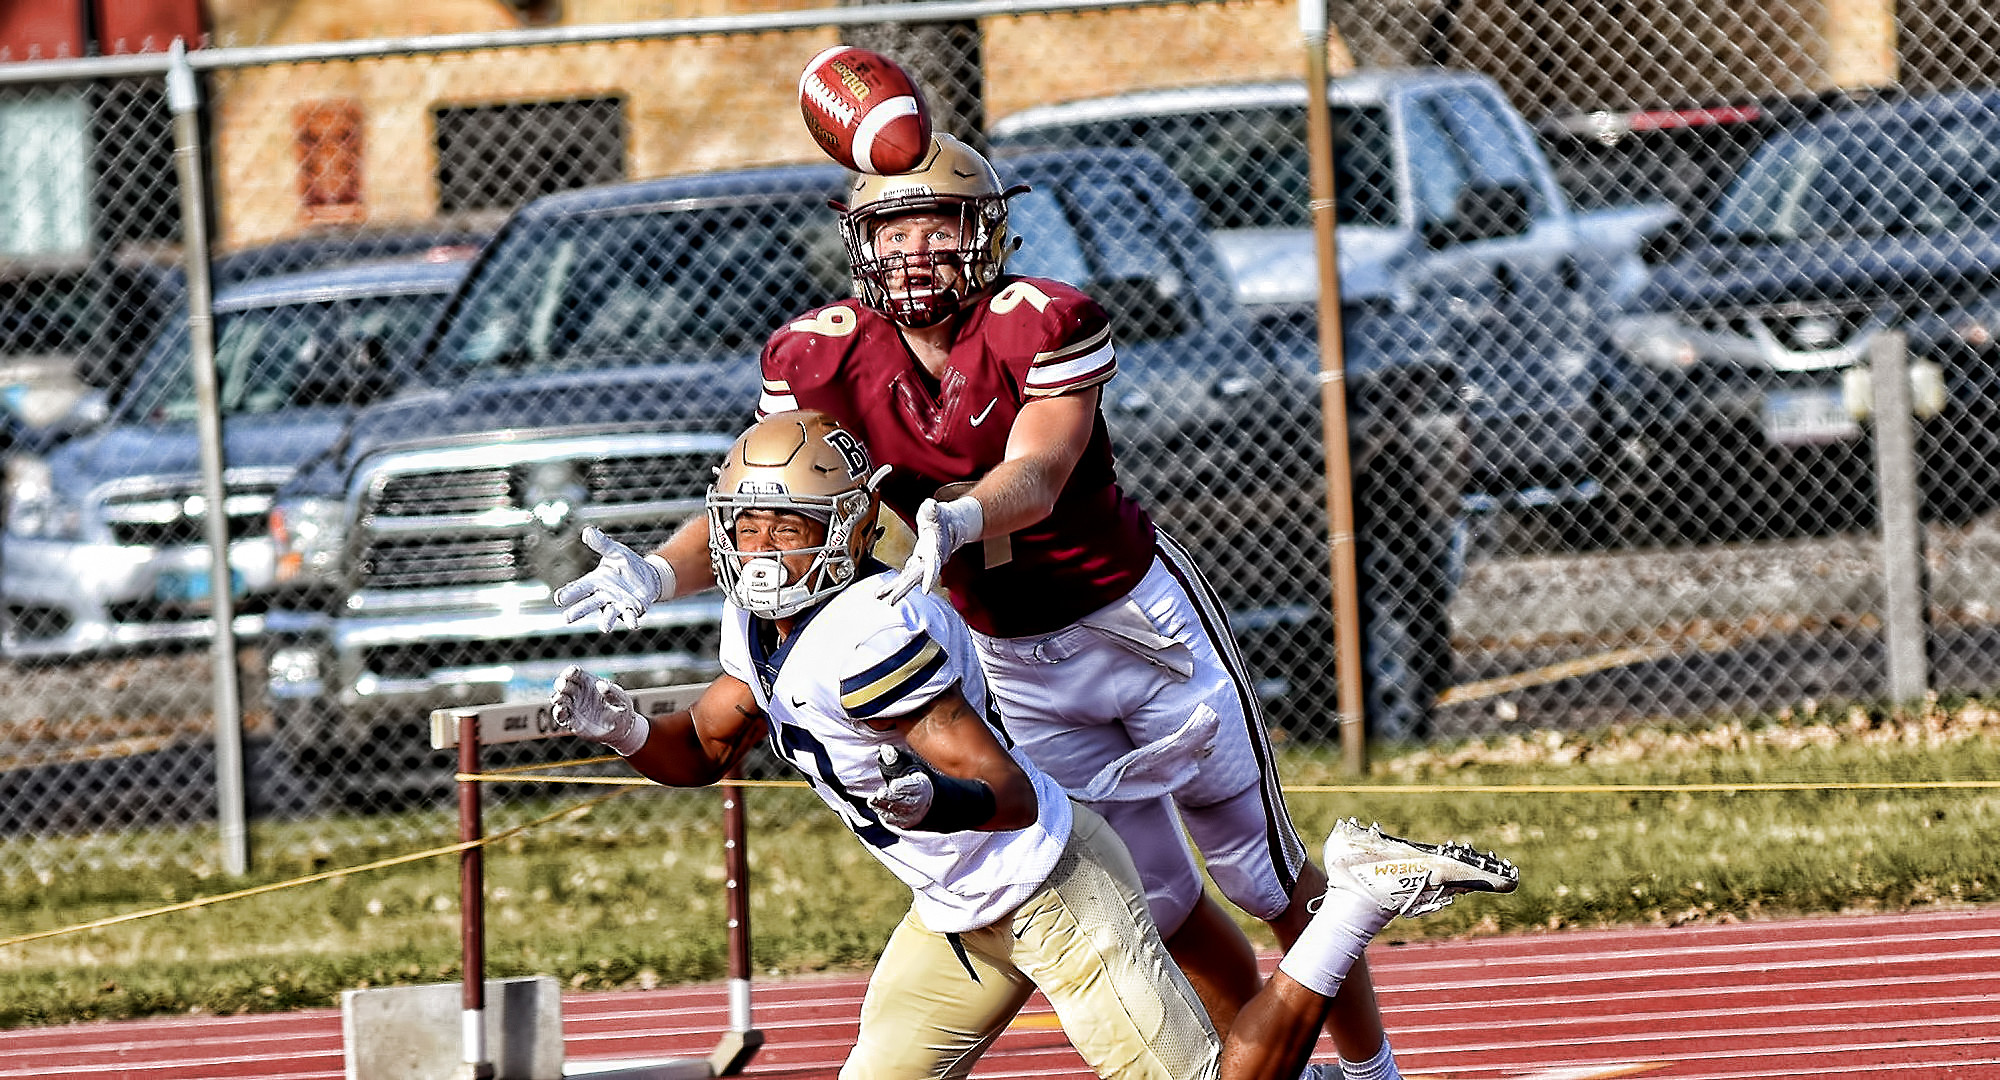 Senior Matt Bye goes over a Bethel defender to try and make a catch during the Cobbers' game with the Royals.